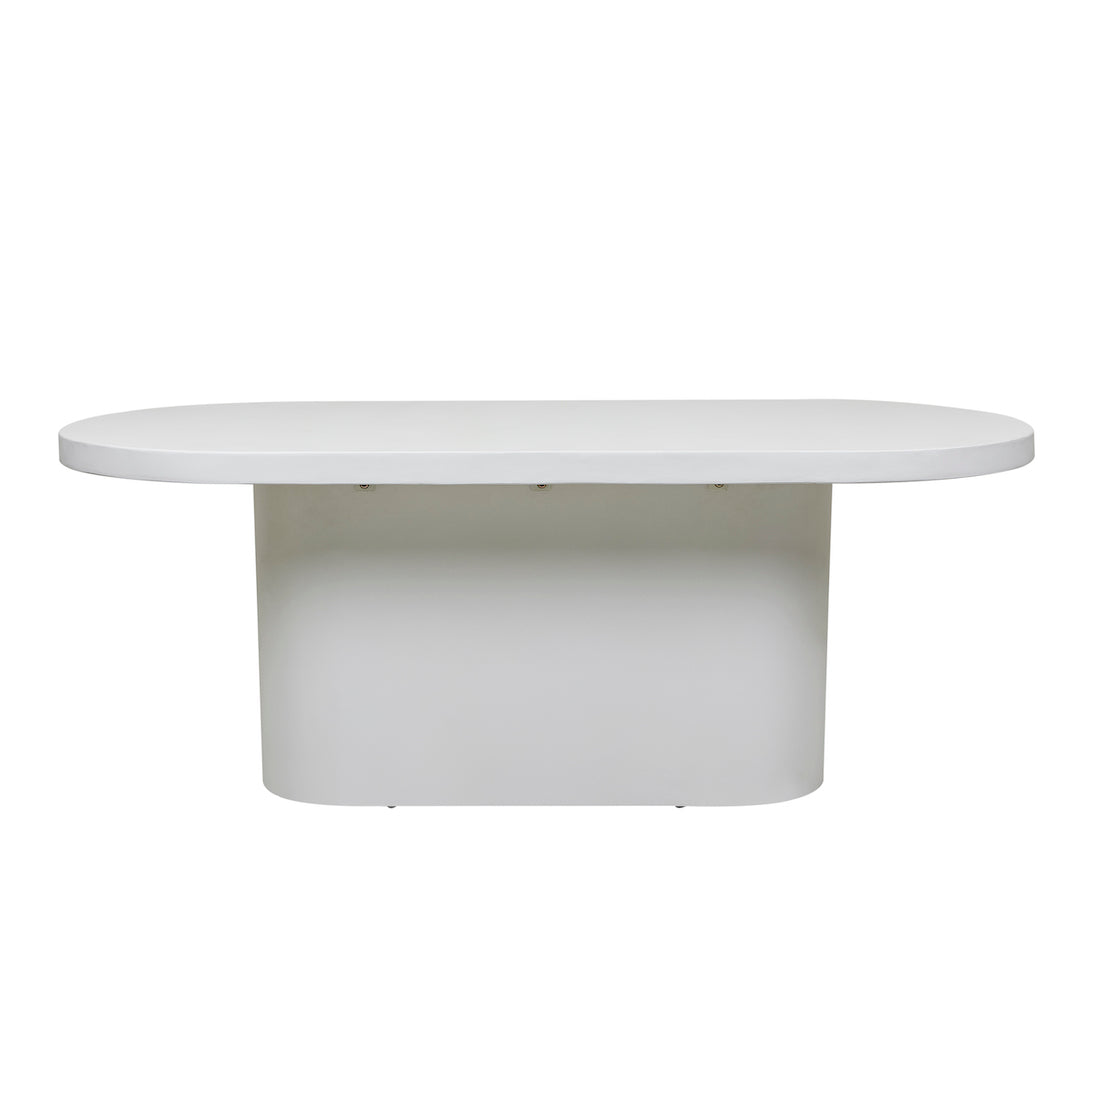 Ossa Oval Patio Dining Table | White